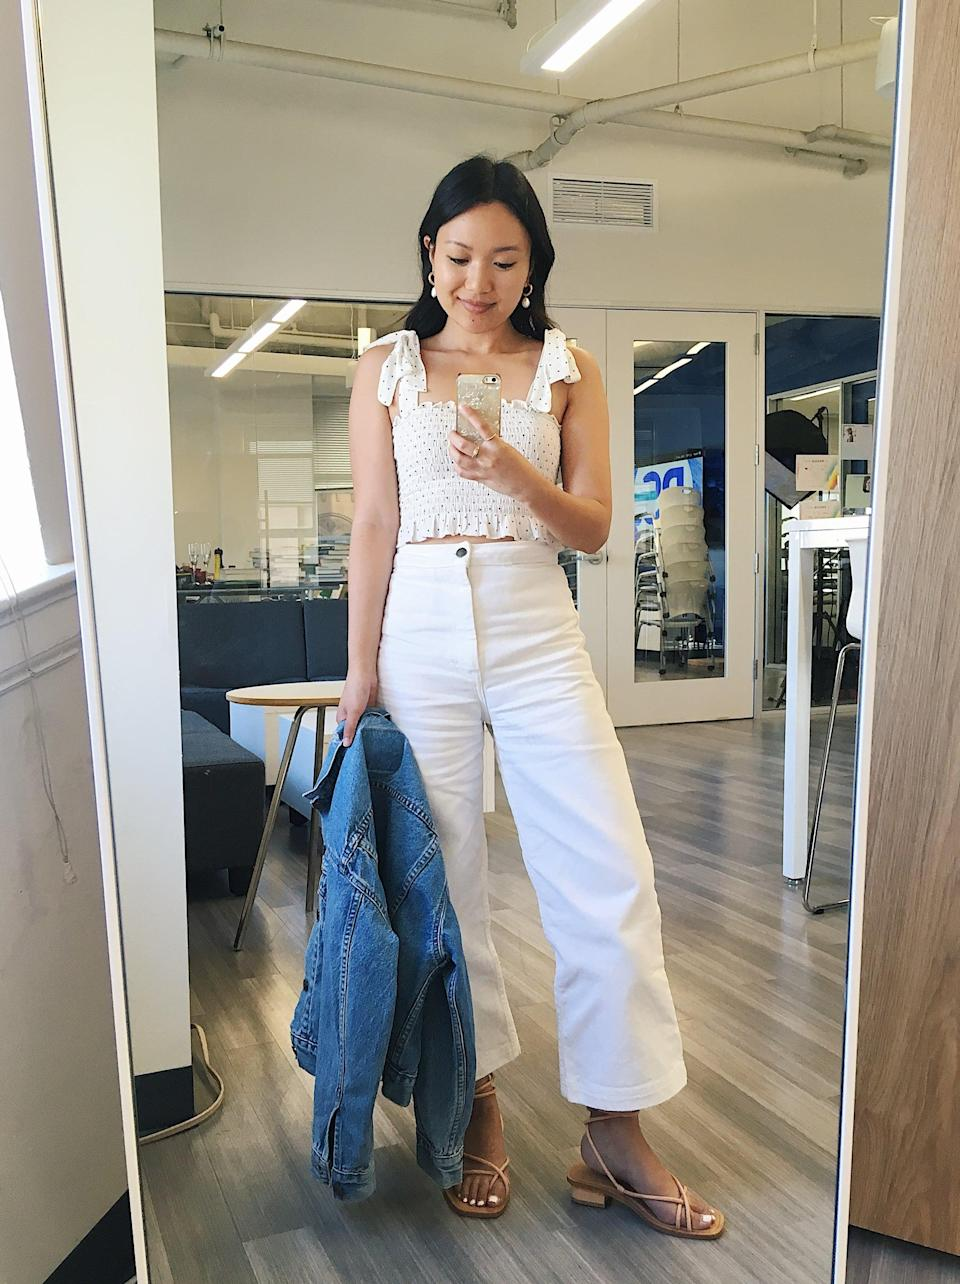 """<p>""""I love anything white and wide-leg, so <a href=""""https://www.popsugar.com/buy?url=https%3A%2F%2Fwww.shopbop.com%2Fmerida-pant-apiece-apart%2Fvp%2Fv%3D1%2F1531705531.htm%3Fref%3Dcovet.popsugar.com&p_name=these%20Apiece%20Apart%20pants&retailer=shopbop.com&evar1=fab%3Aus&evar9=46316761&evar98=https%3A%2F%2Fwww.popsugar.com%2Ffashion%2Fphoto-gallery%2F46316761%2Fimage%2F46316773%2FStephanie-Pick-Apiece-Apart-Merida-Pants&list1=shopping%2Cdenim%2Ceditors%20pick&prop13=api&pdata=1"""" rel=""""nofollow noopener"""" target=""""_blank"""" data-ylk=""""slk:these Apiece Apart pants"""" class=""""link rapid-noclick-resp"""">these Apiece Apart pants</a> were a no-brainer for me - I actually wear them year-round! Not only are they super flattering for my petite frame, but I actually find them to be so much easier to style than my skinny-leg counterparts - yes, even in a white color! This is a go-to Summer outfit formula for me: these pants, a romantic blouse, a denim jacket, and ankle-tie sandals or espadrilles. I also love wearing the pants with a linen blazer and tan leather accessories."""" - Stephanie Nguyen, editor, Native Content</p>"""